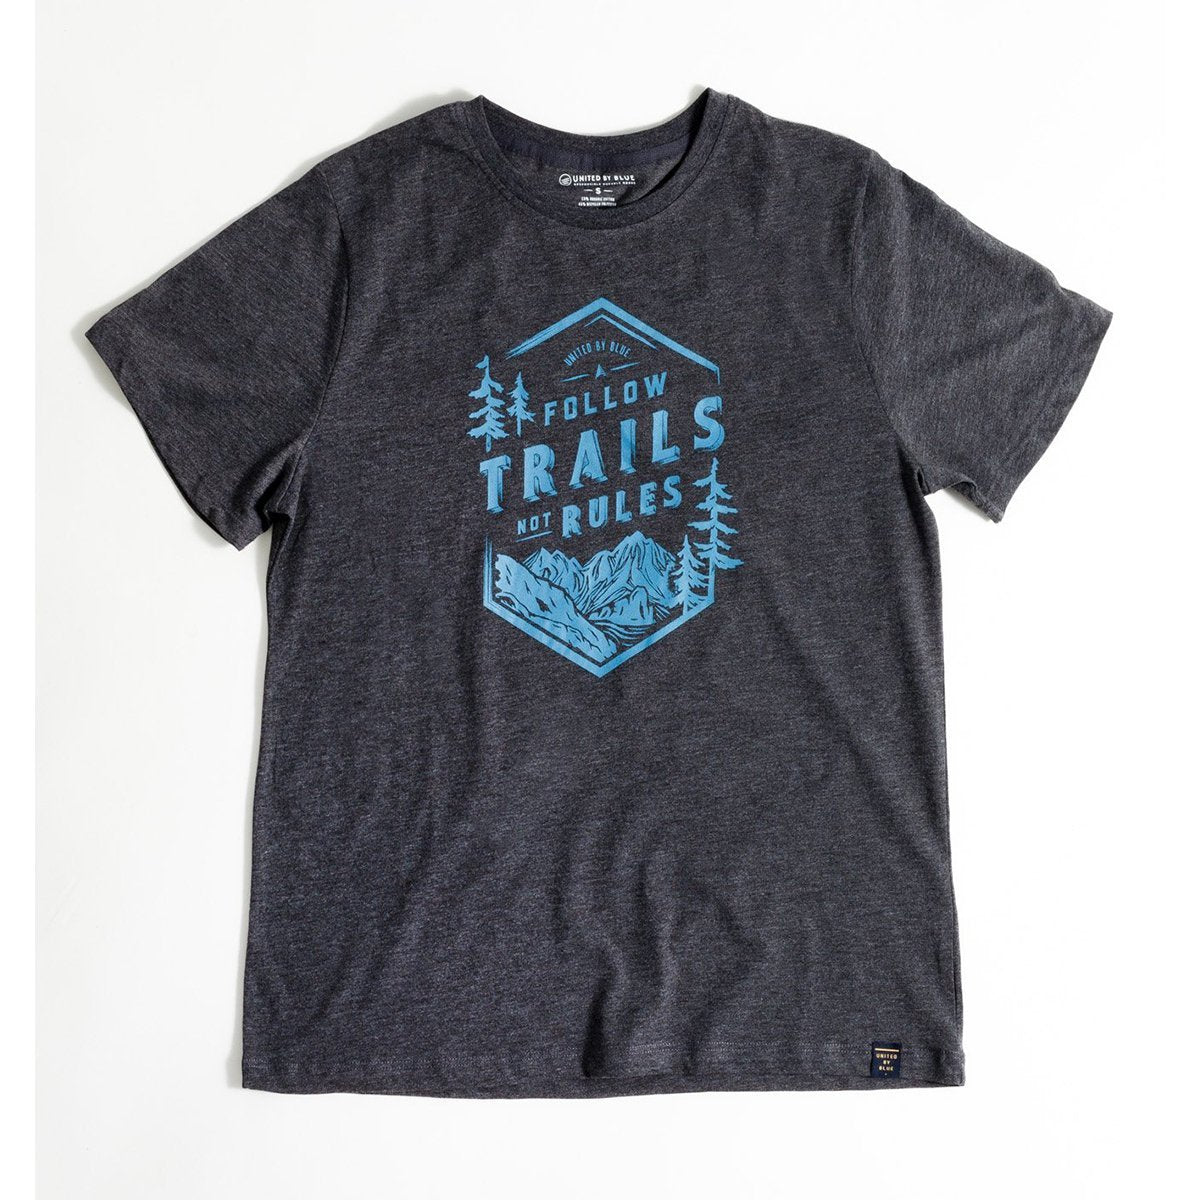 United By Blue | Mens Graphic T-Shirt | Organic Cotton T-Shirt | Follow Trails Not Rules - Black